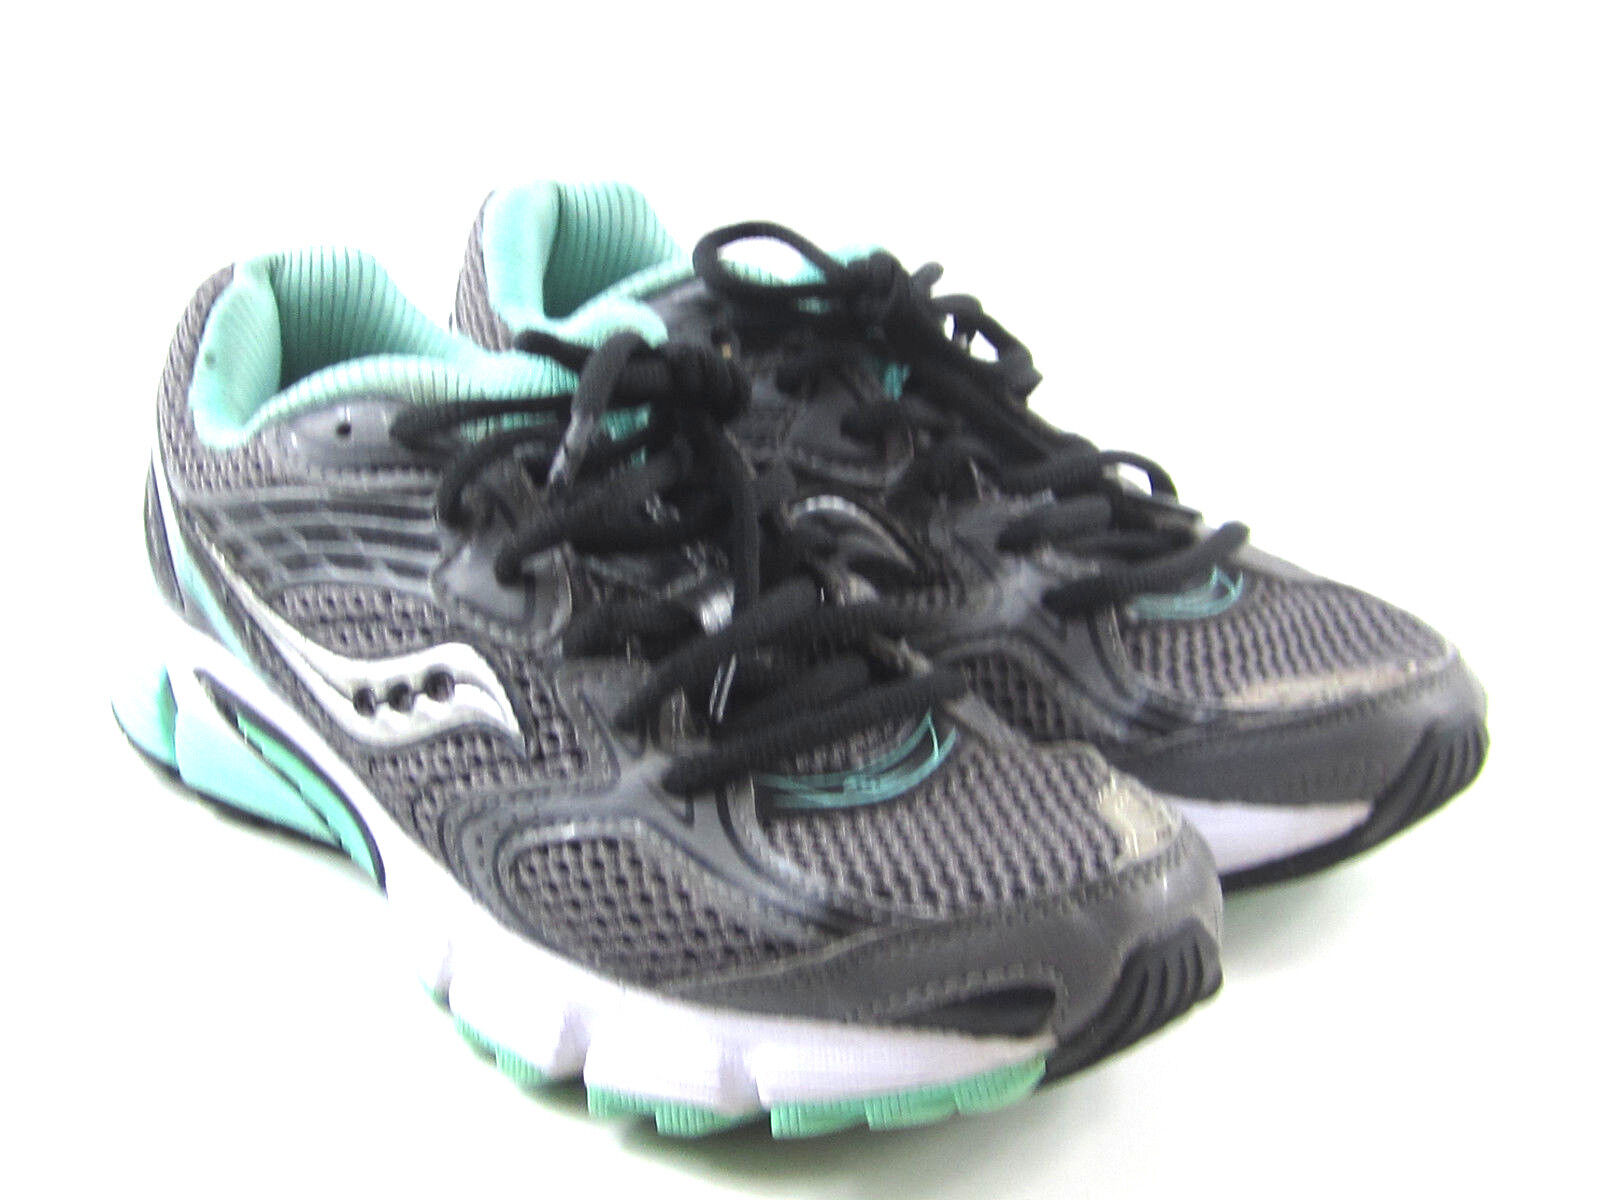 Saucony Liberate Athletic Running shoes Gry Blk Mint Women's Size 6.5 S15231-8